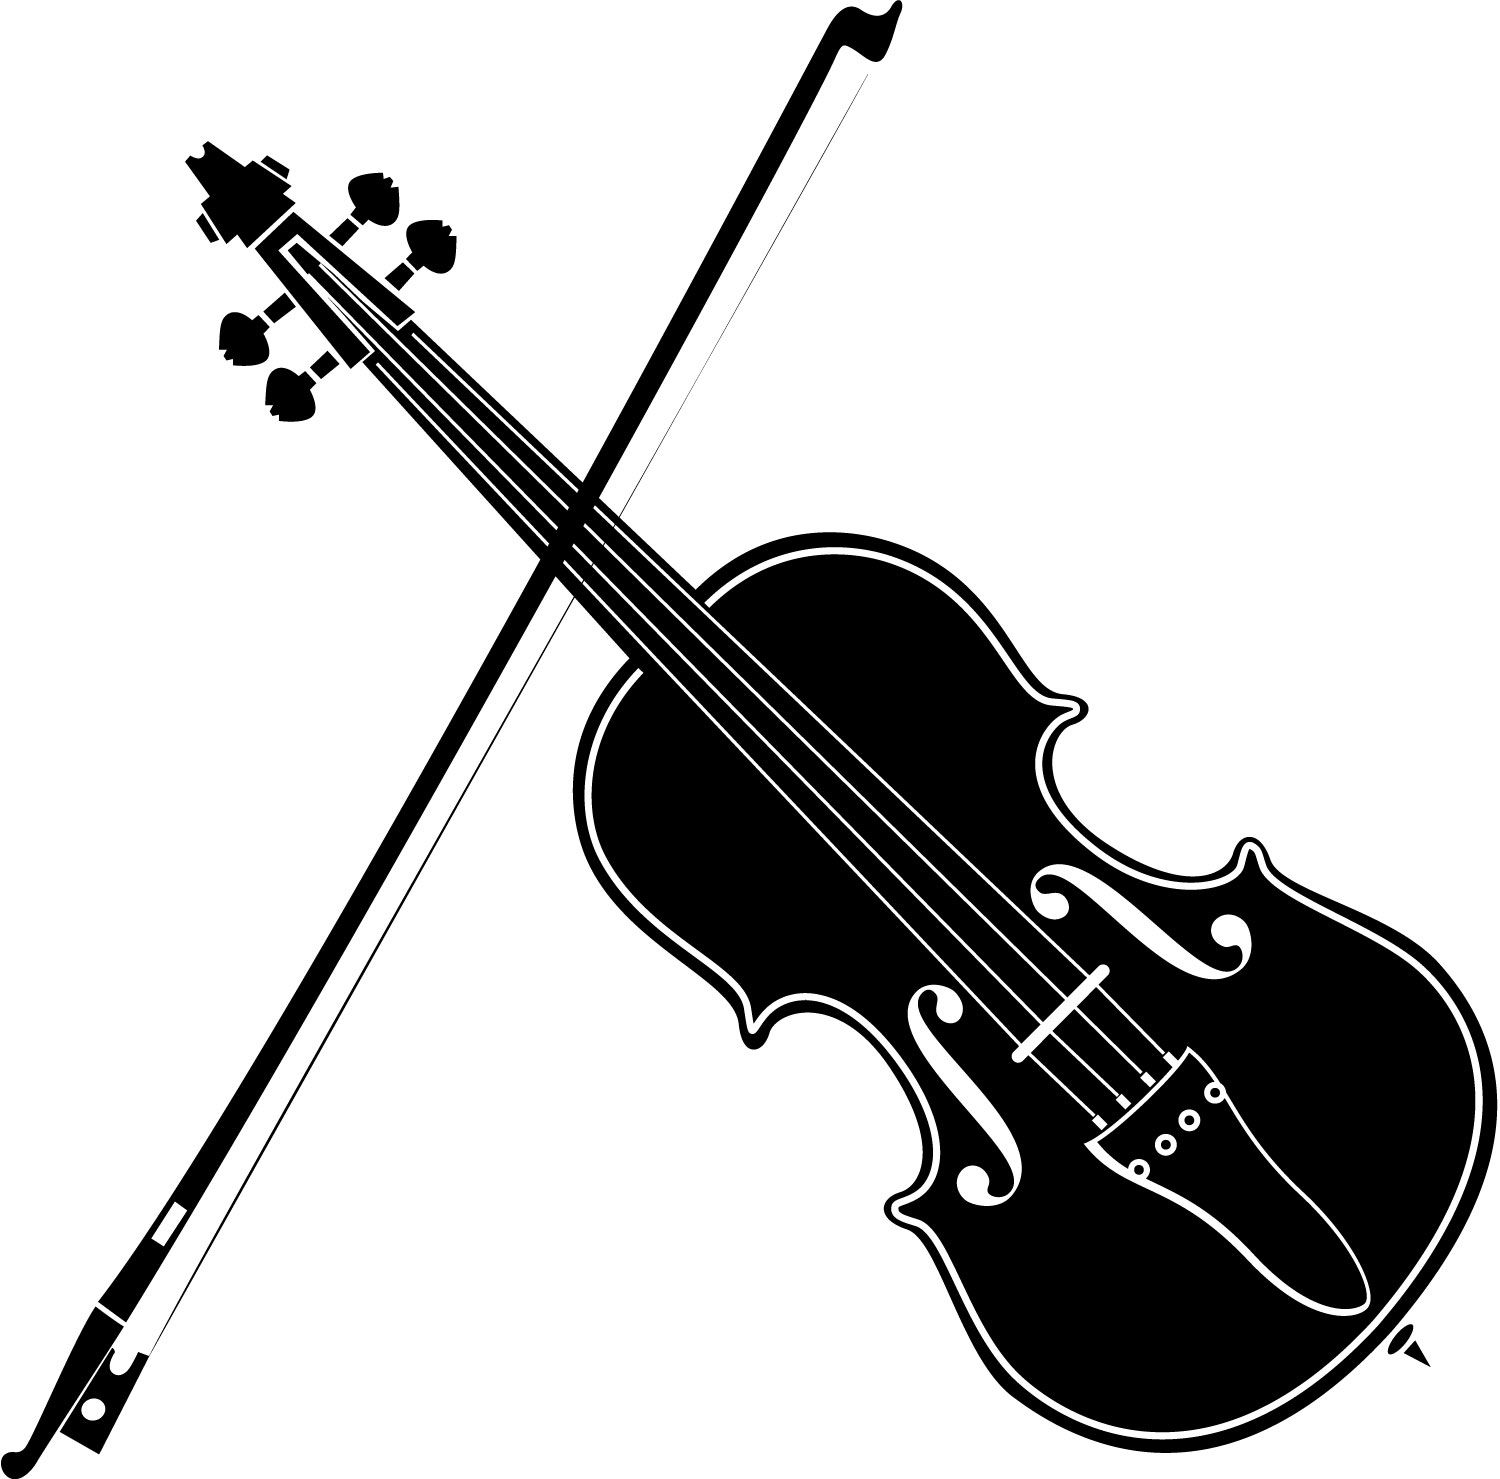 Human figure hands open clip clipart panda free clipart images - Playing Violin Clipart Black And White Clipart Panda Free